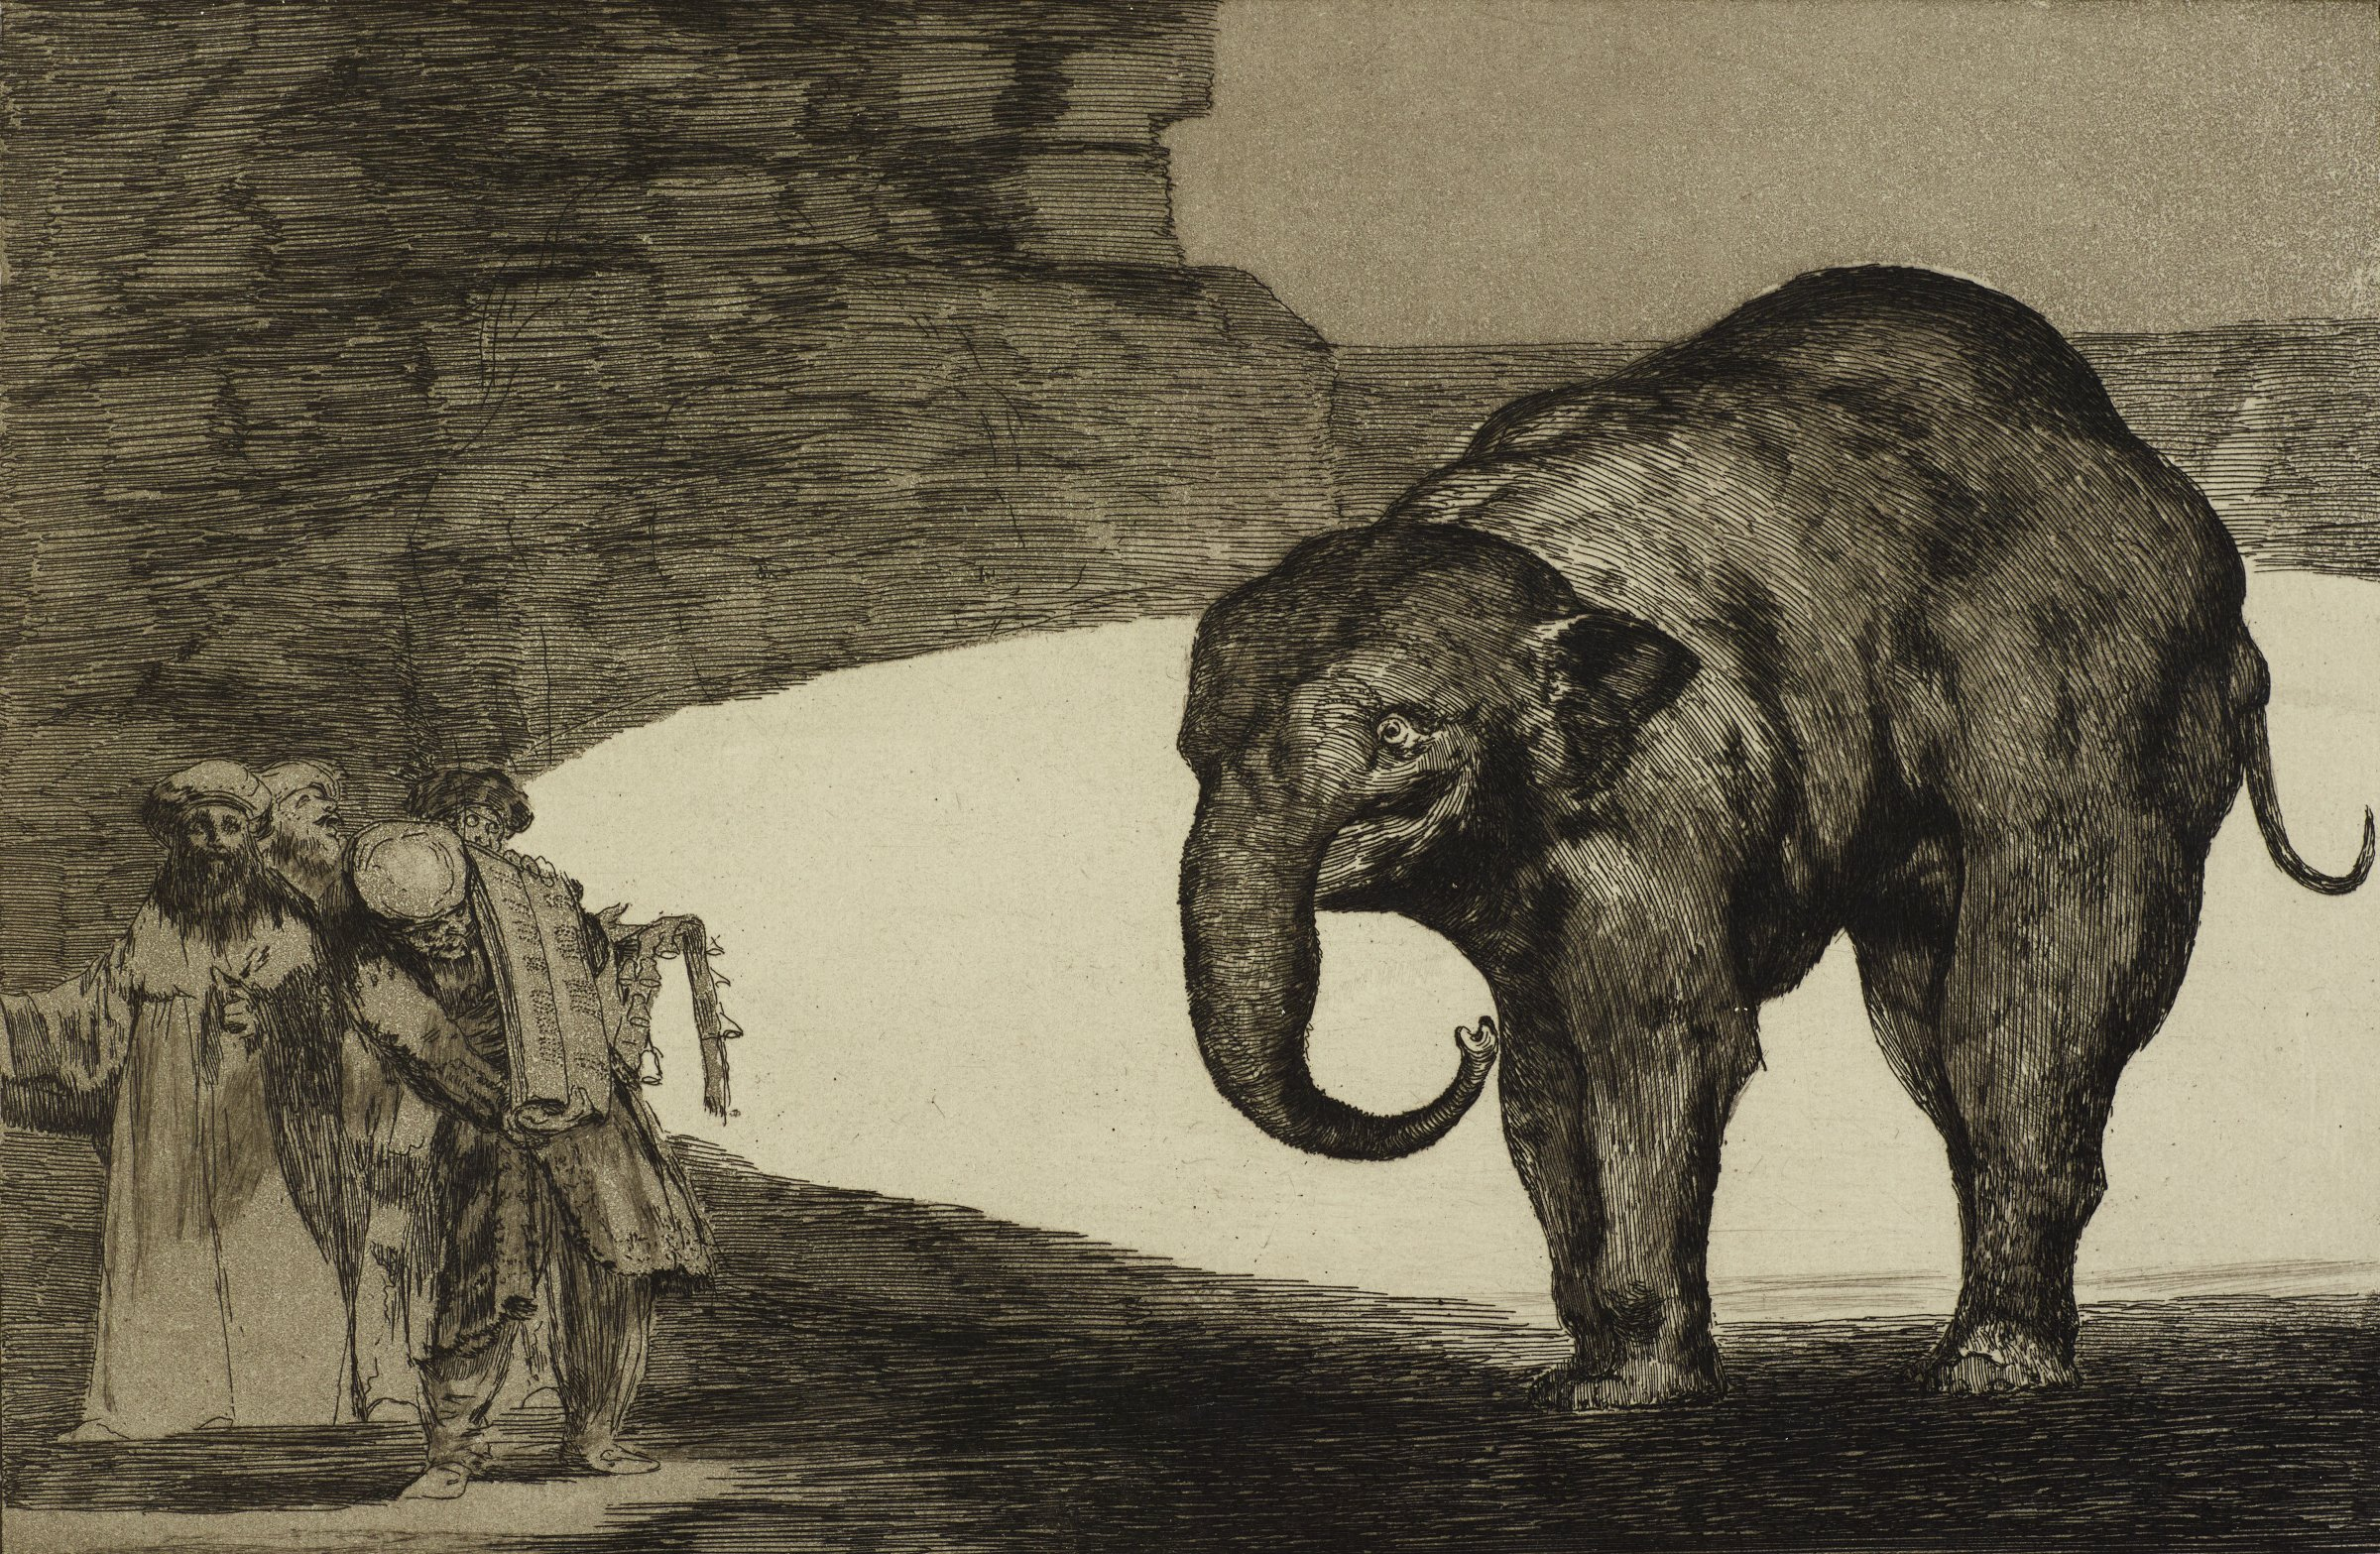 An elephant stands on the right looks at a crowd of four figures. In the background behind the crowd is an outline of a second elephant.